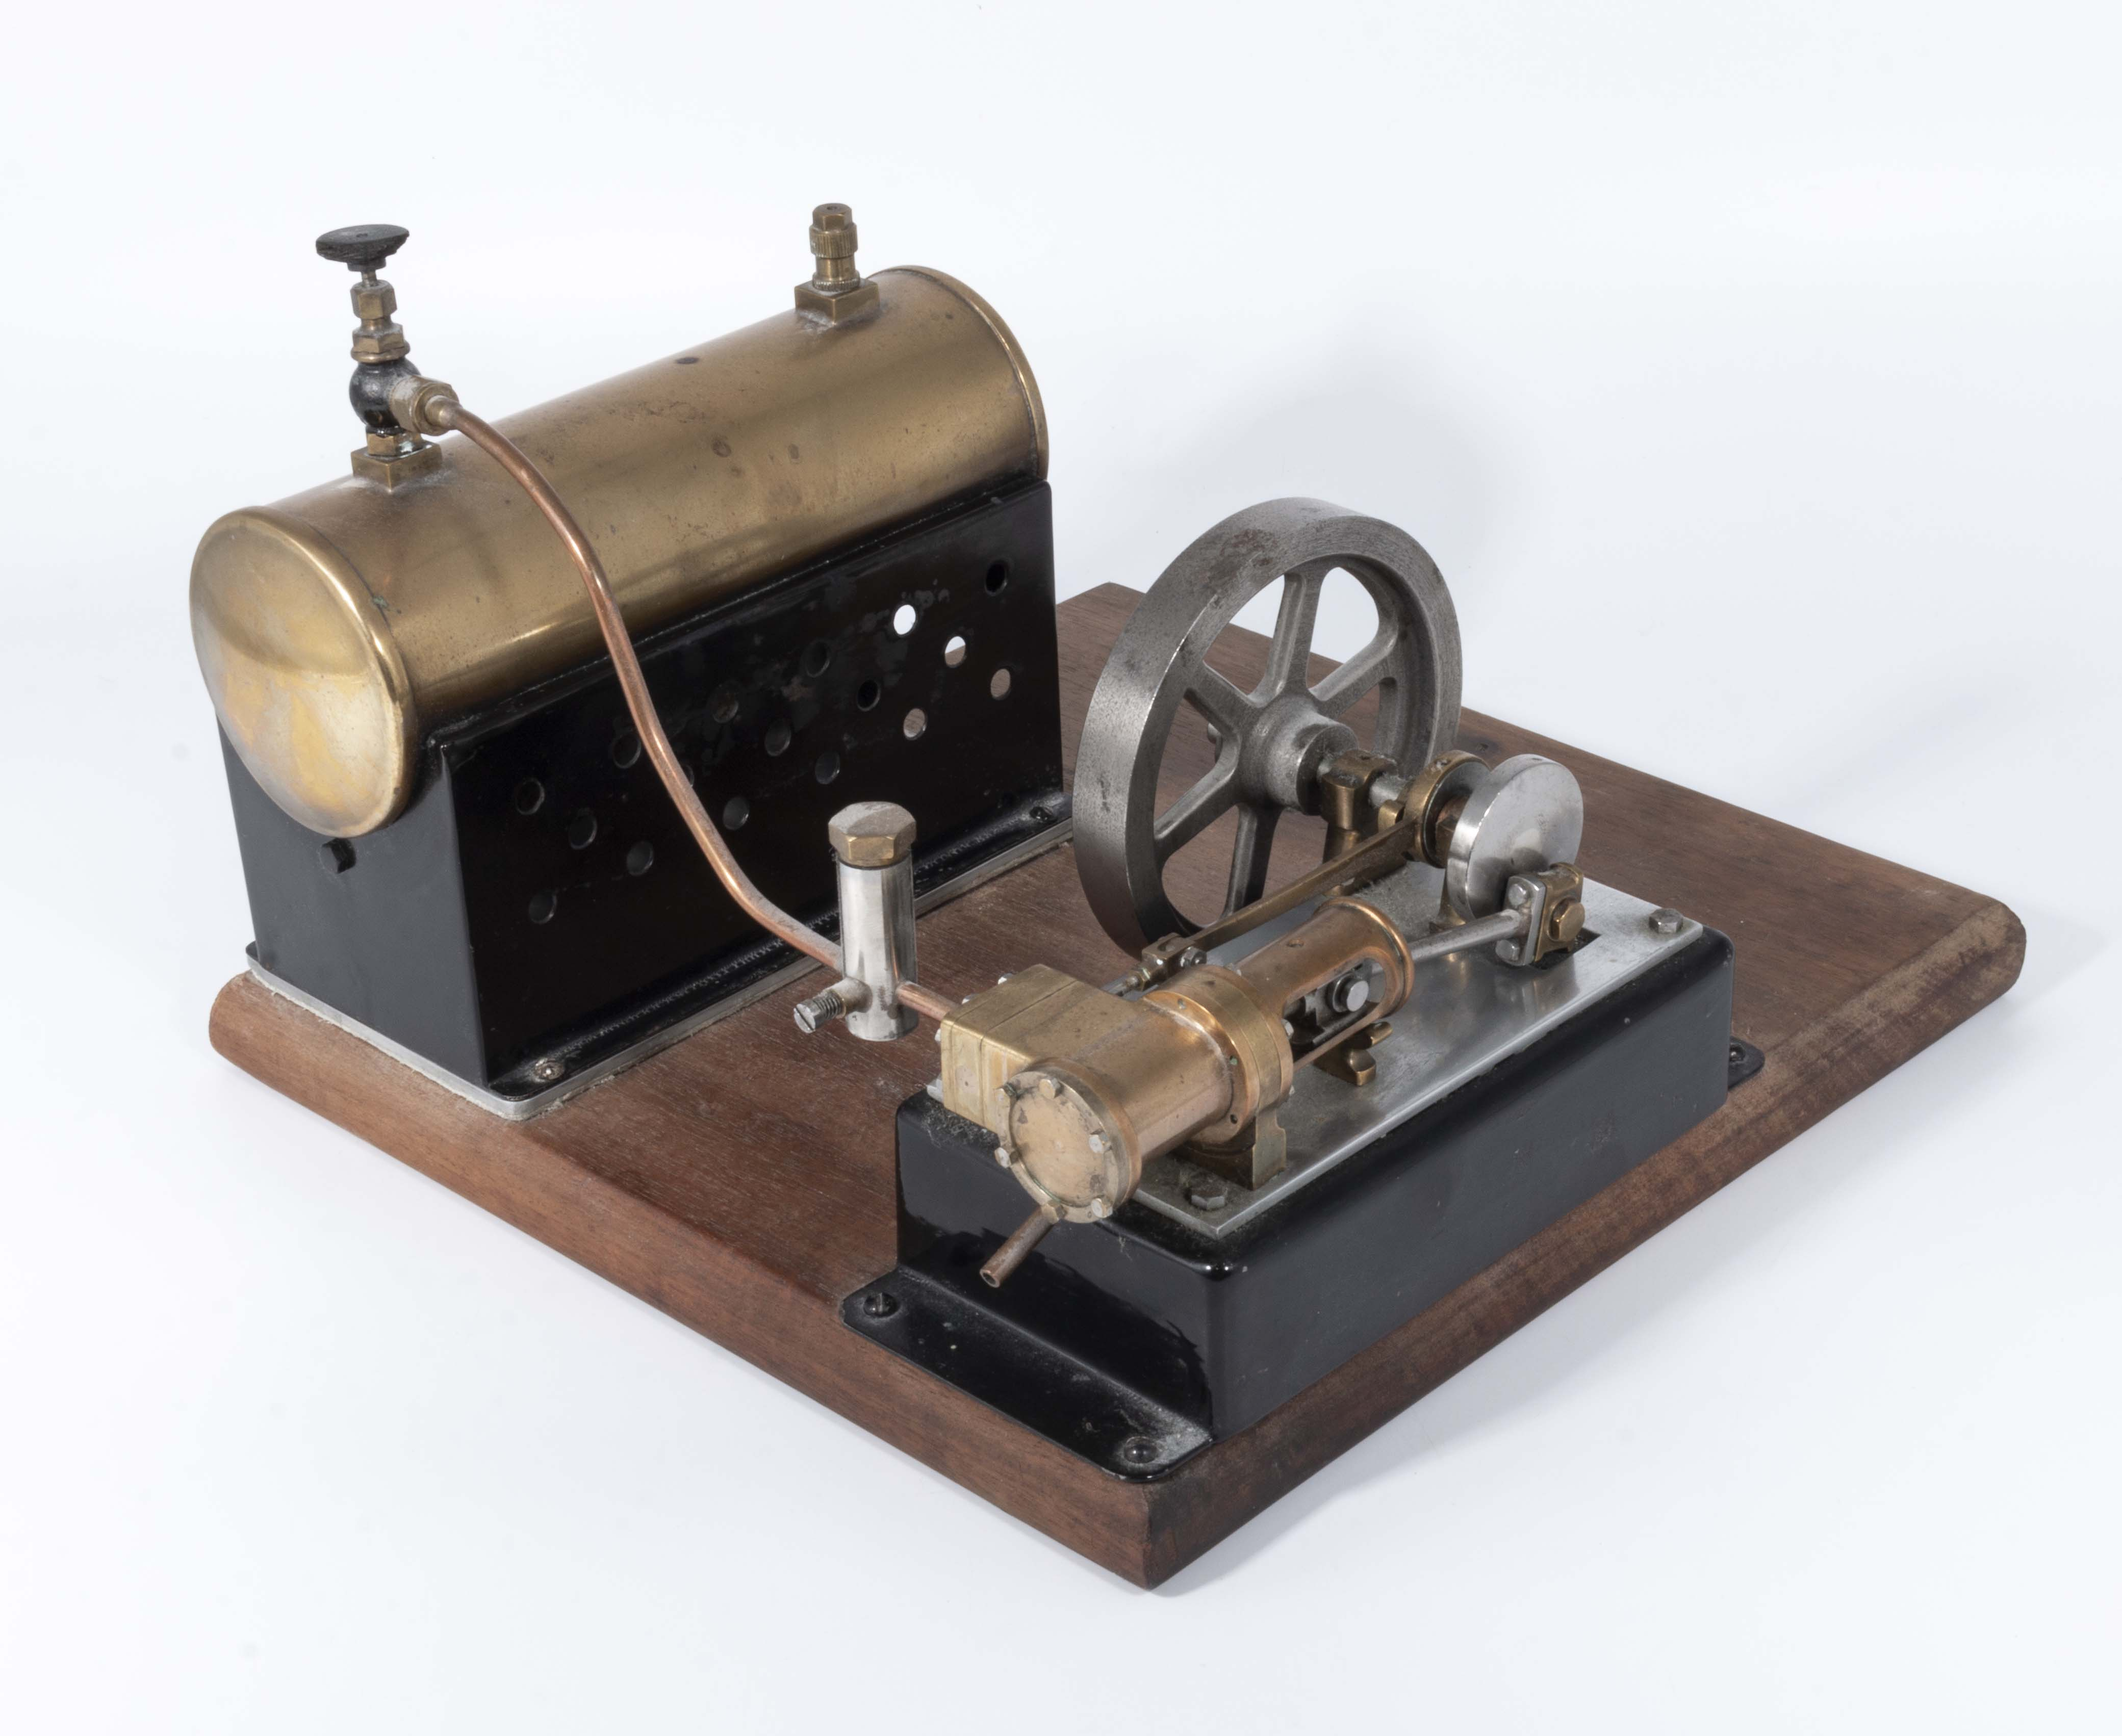 Lot 20 - Vintage static model steam engine